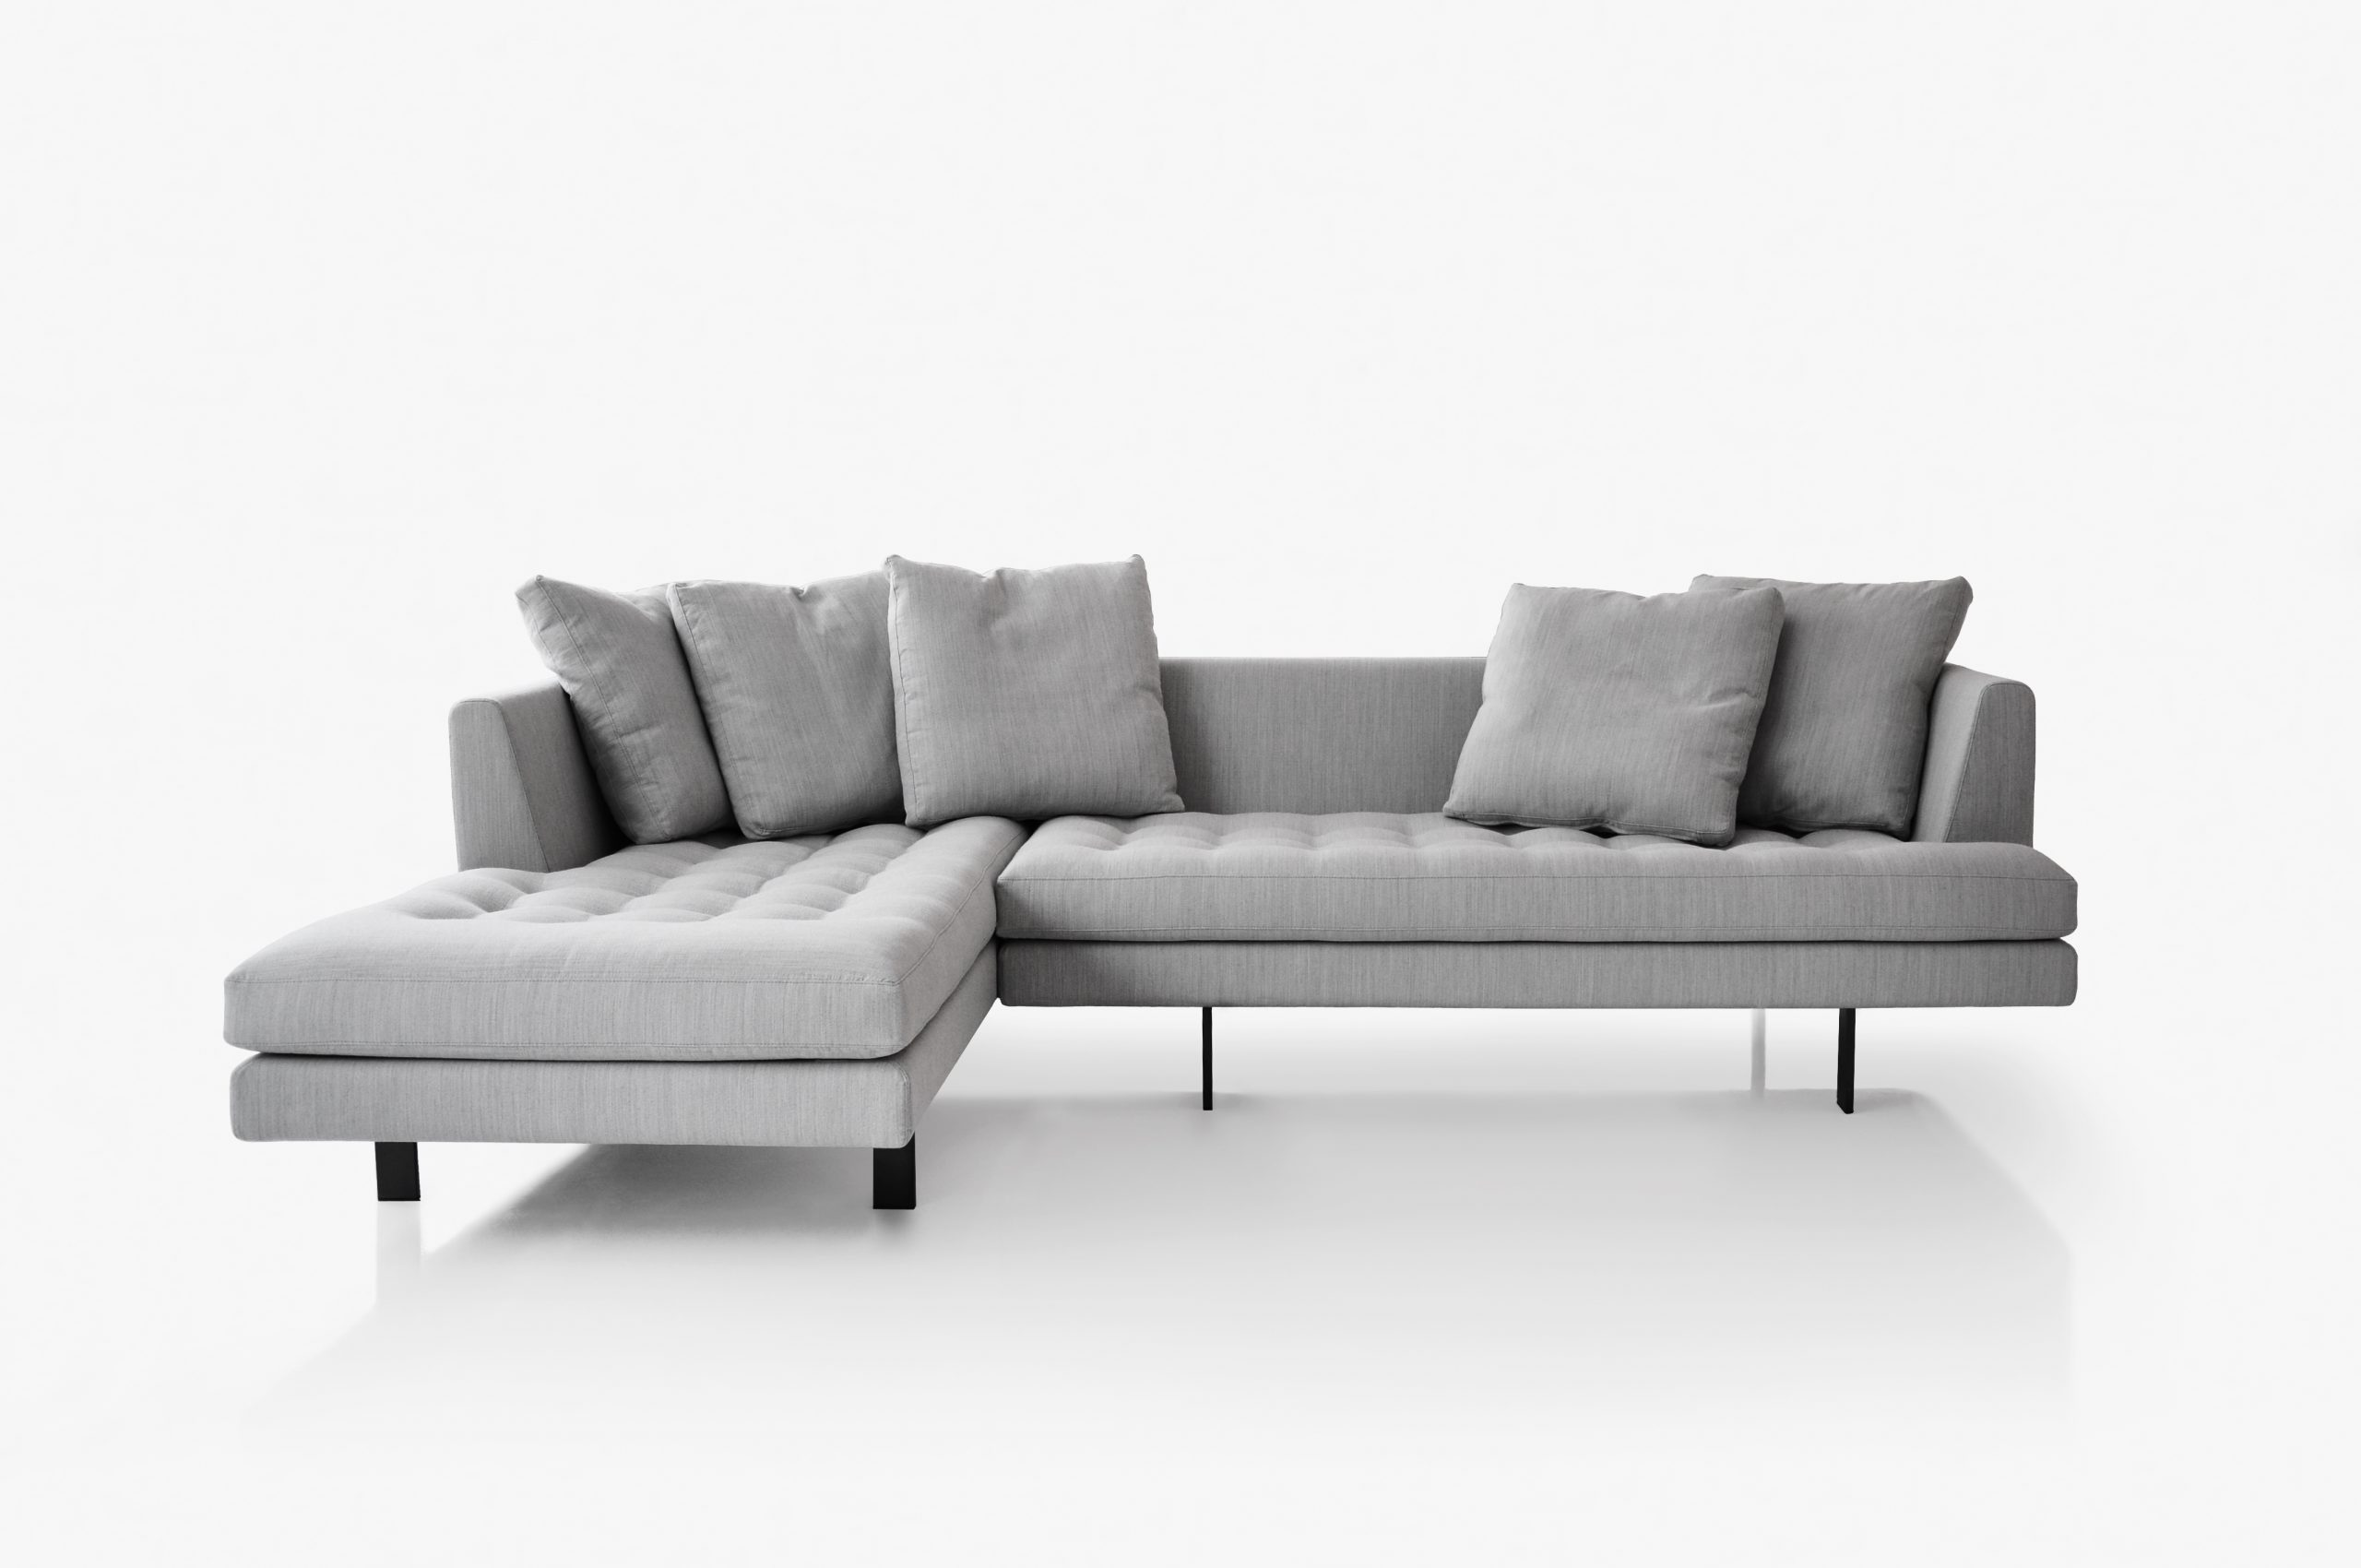 BENSEN Edward Sectional 2 1